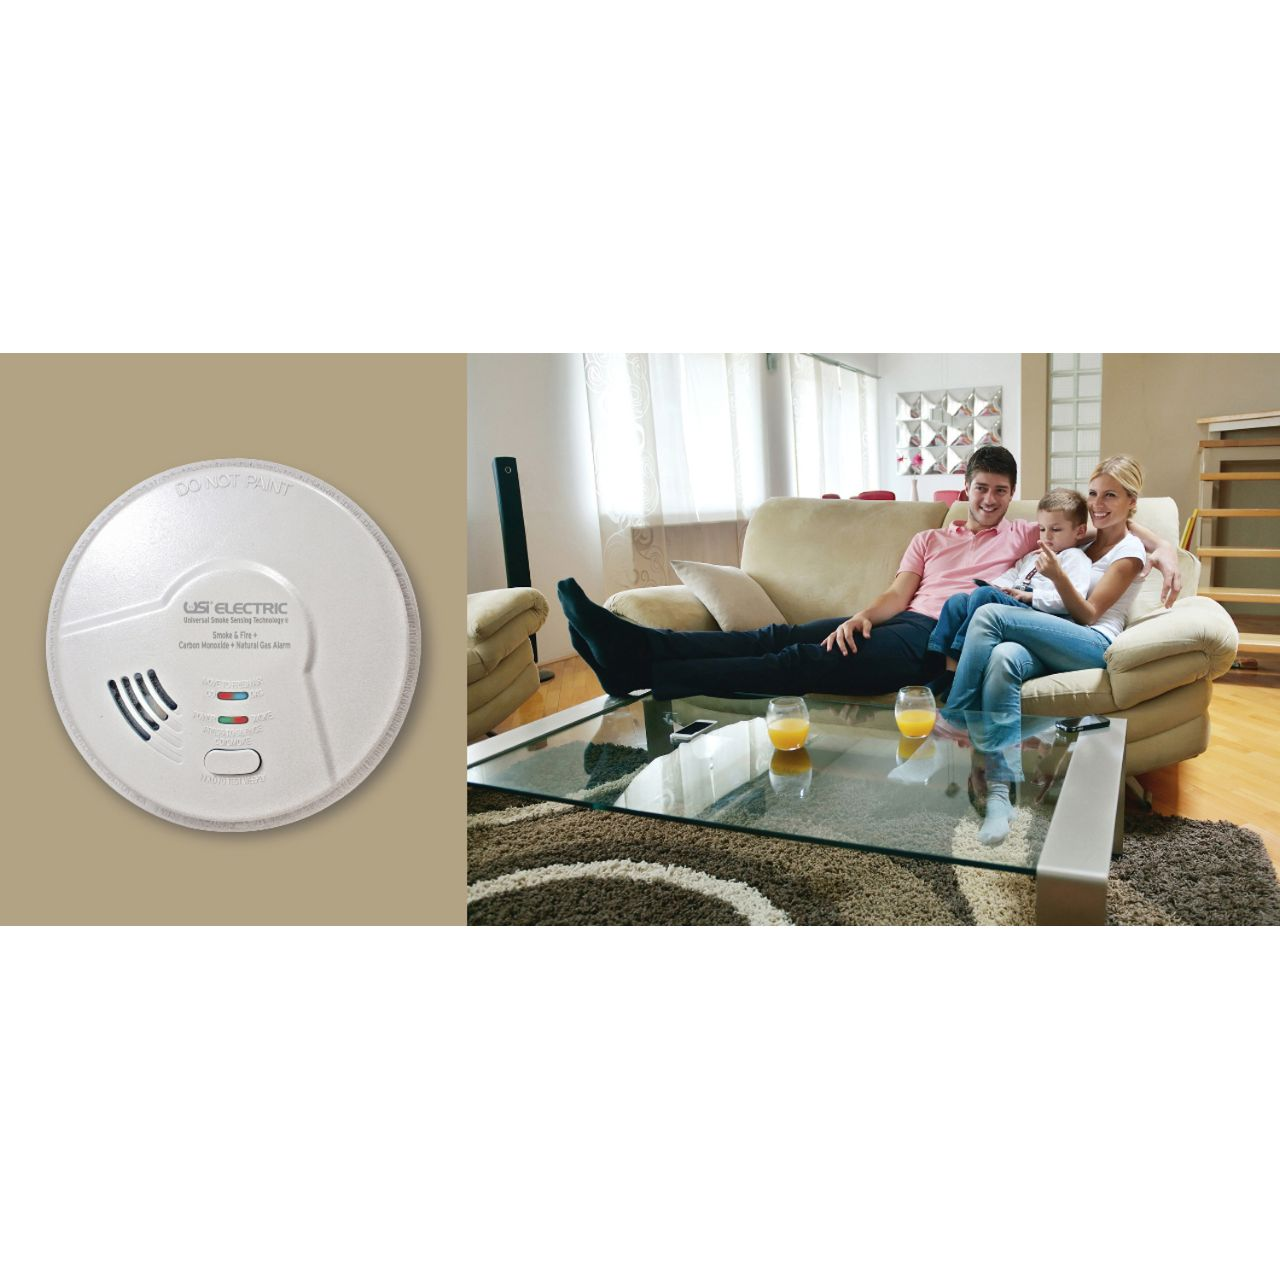 USI Electric MDSCN111CN 4-in-1 Universal Smoke Sensing Technology (IoPhic) Hardwired Smart Alarm